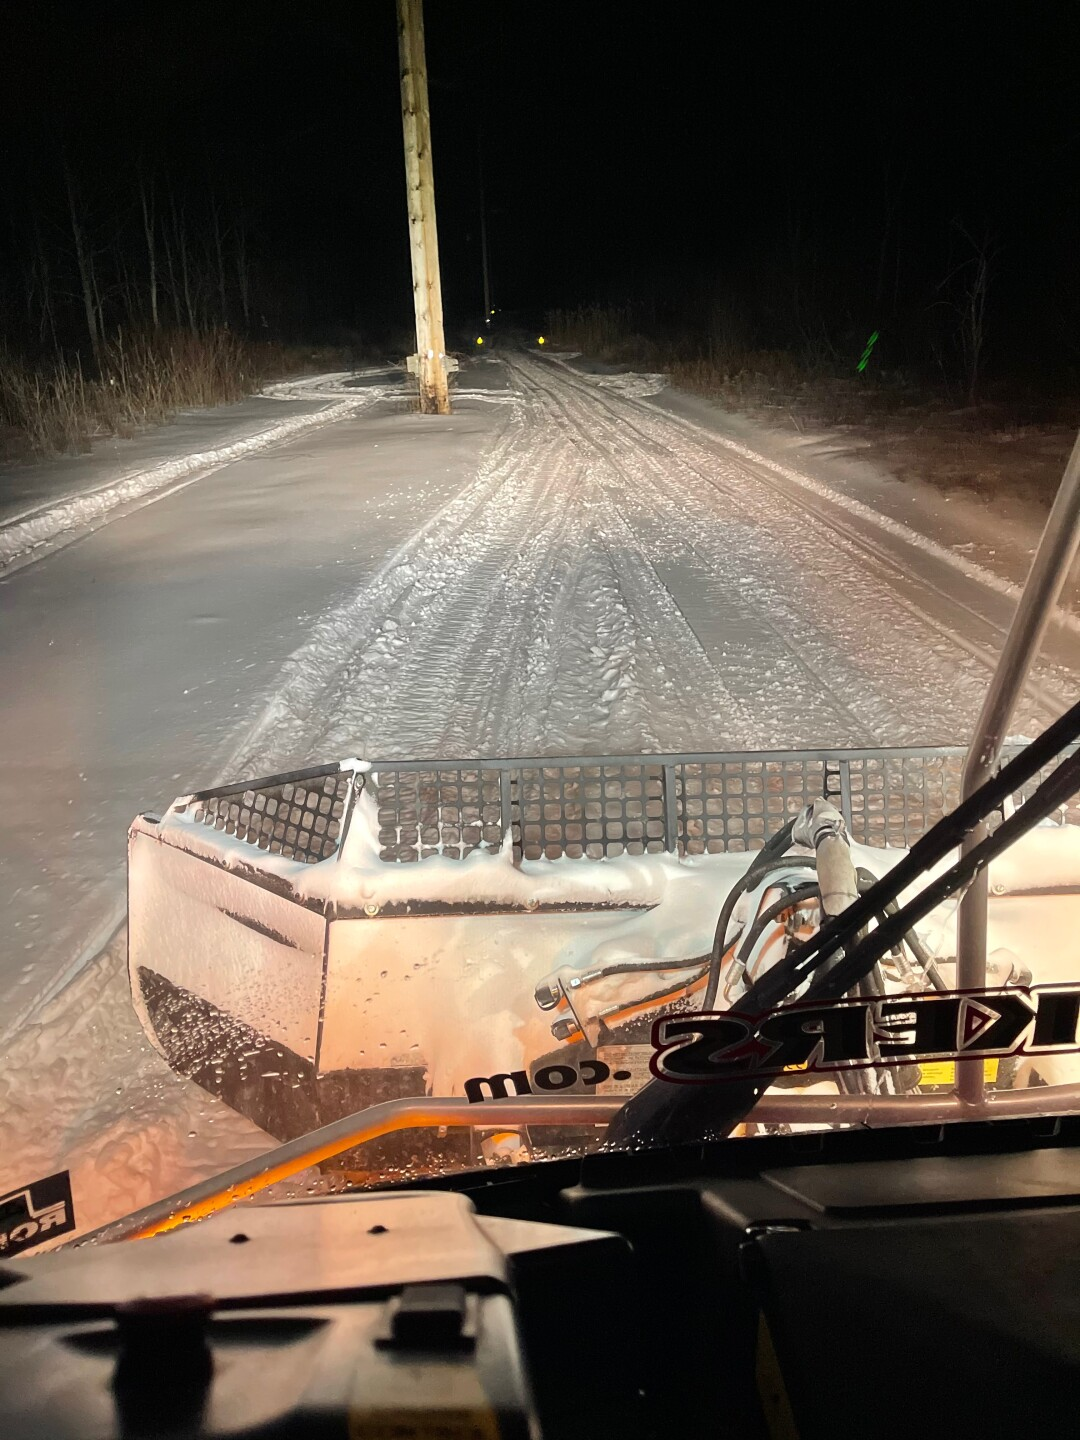 Trails were covered in snow for 20 days this season